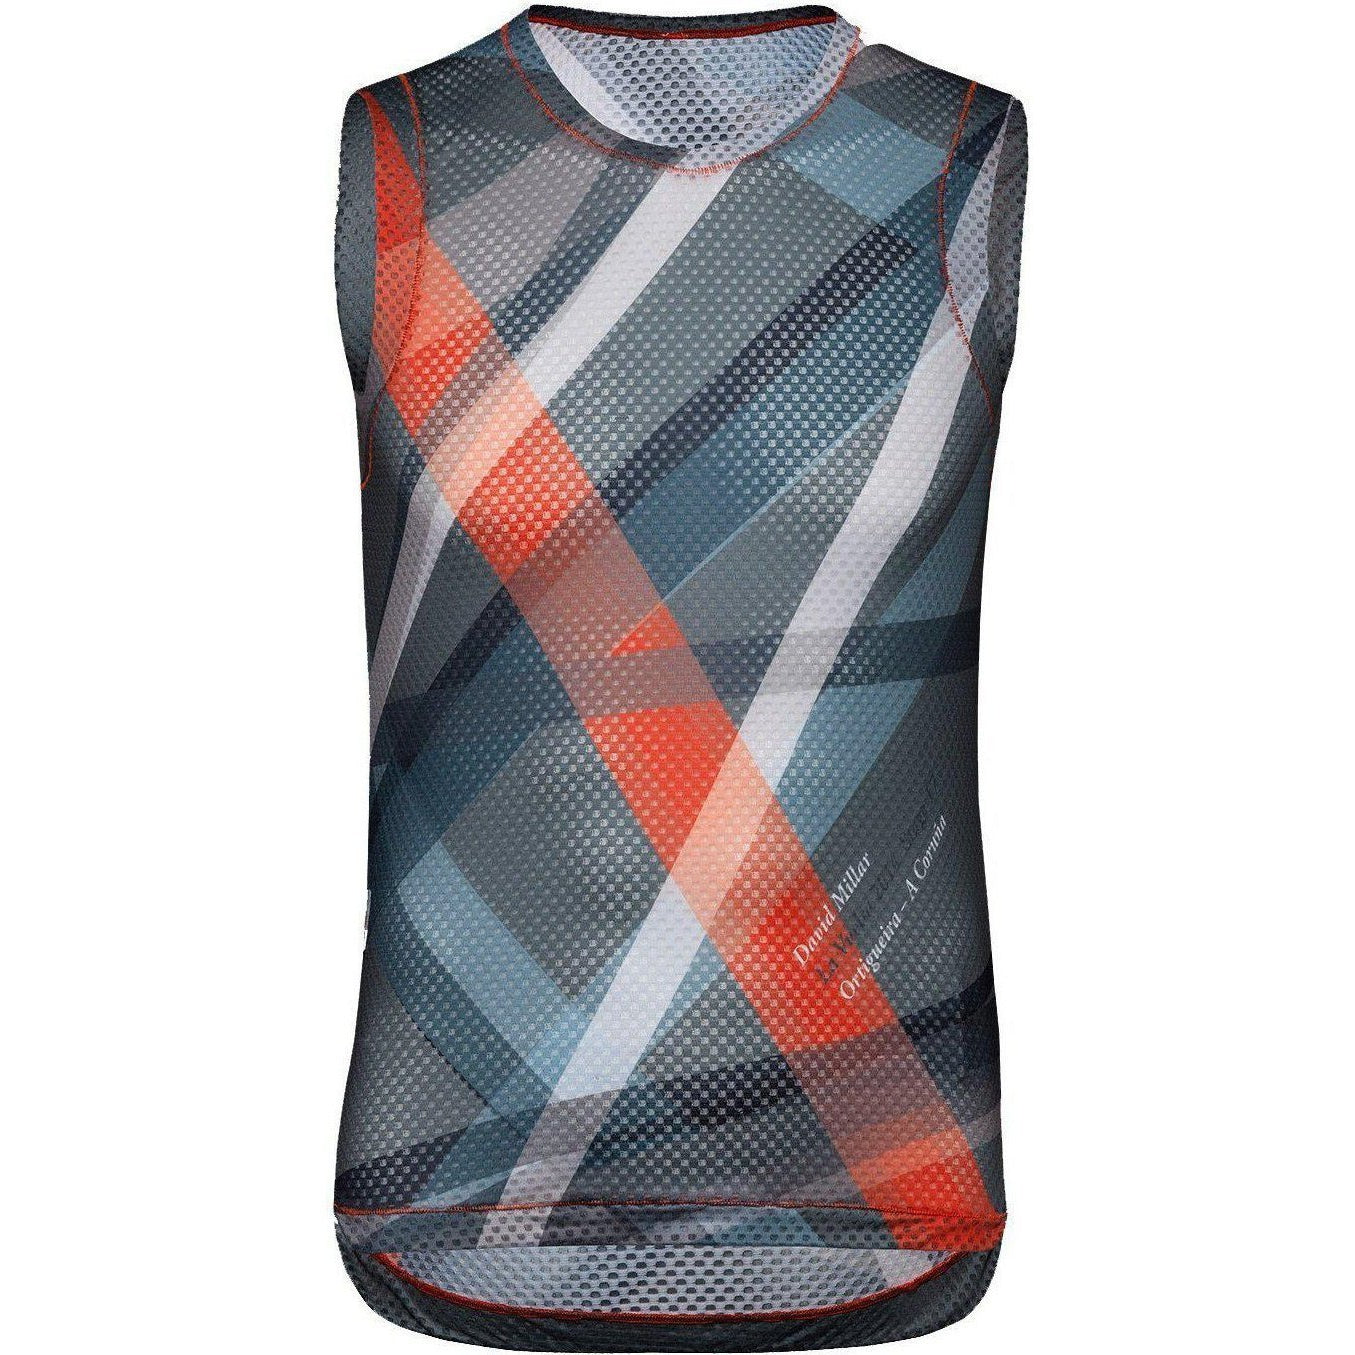 Chpt3-Chpt3 Vuelta 1.81 Base Layer-Vuelta Data Print-36-CST920010473236-saddleback-elite-performance-cycling